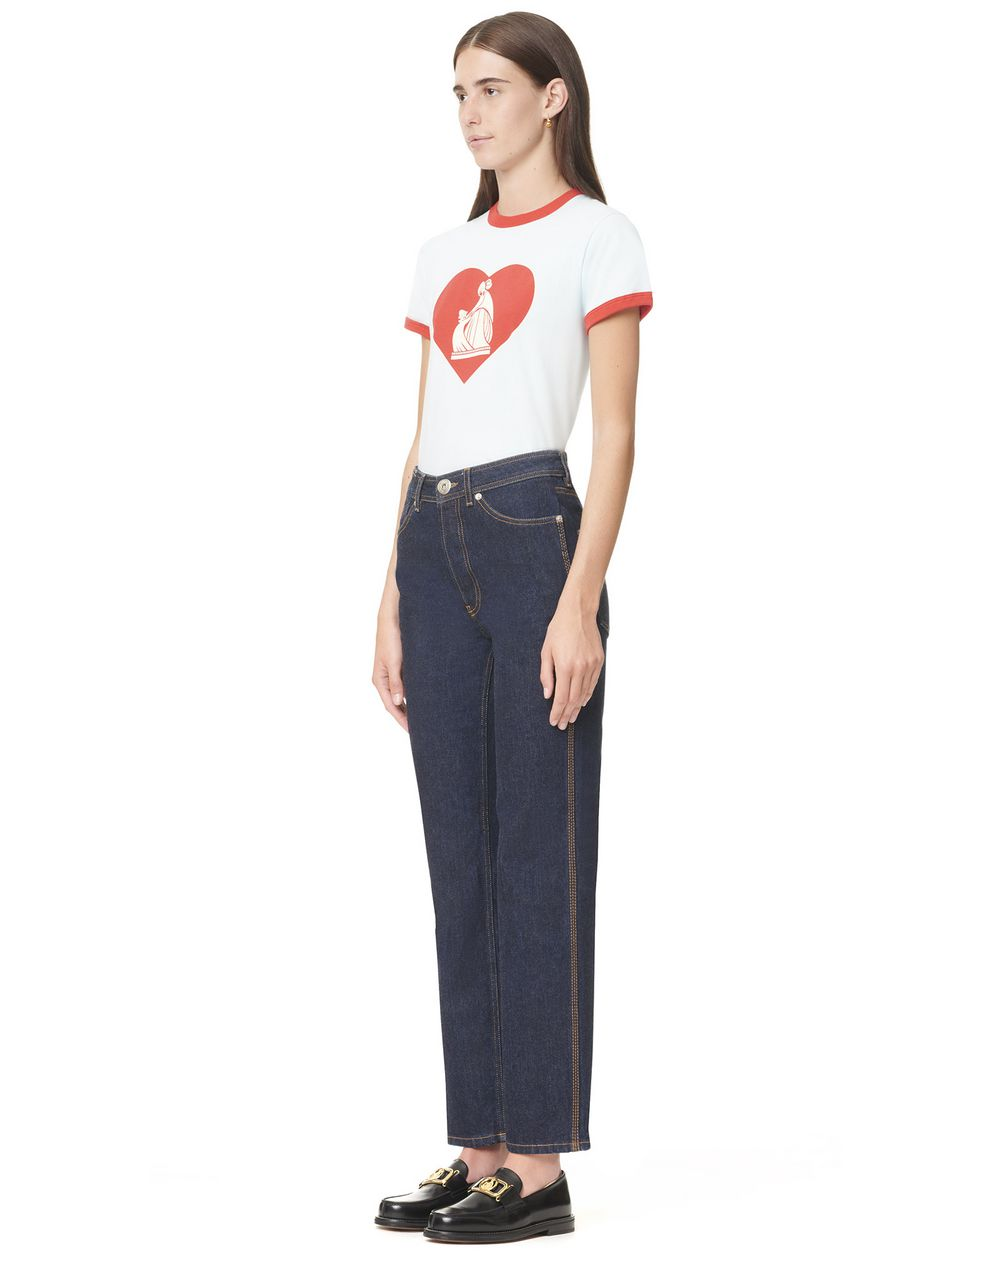 High-waisted denim pants - Lanvin